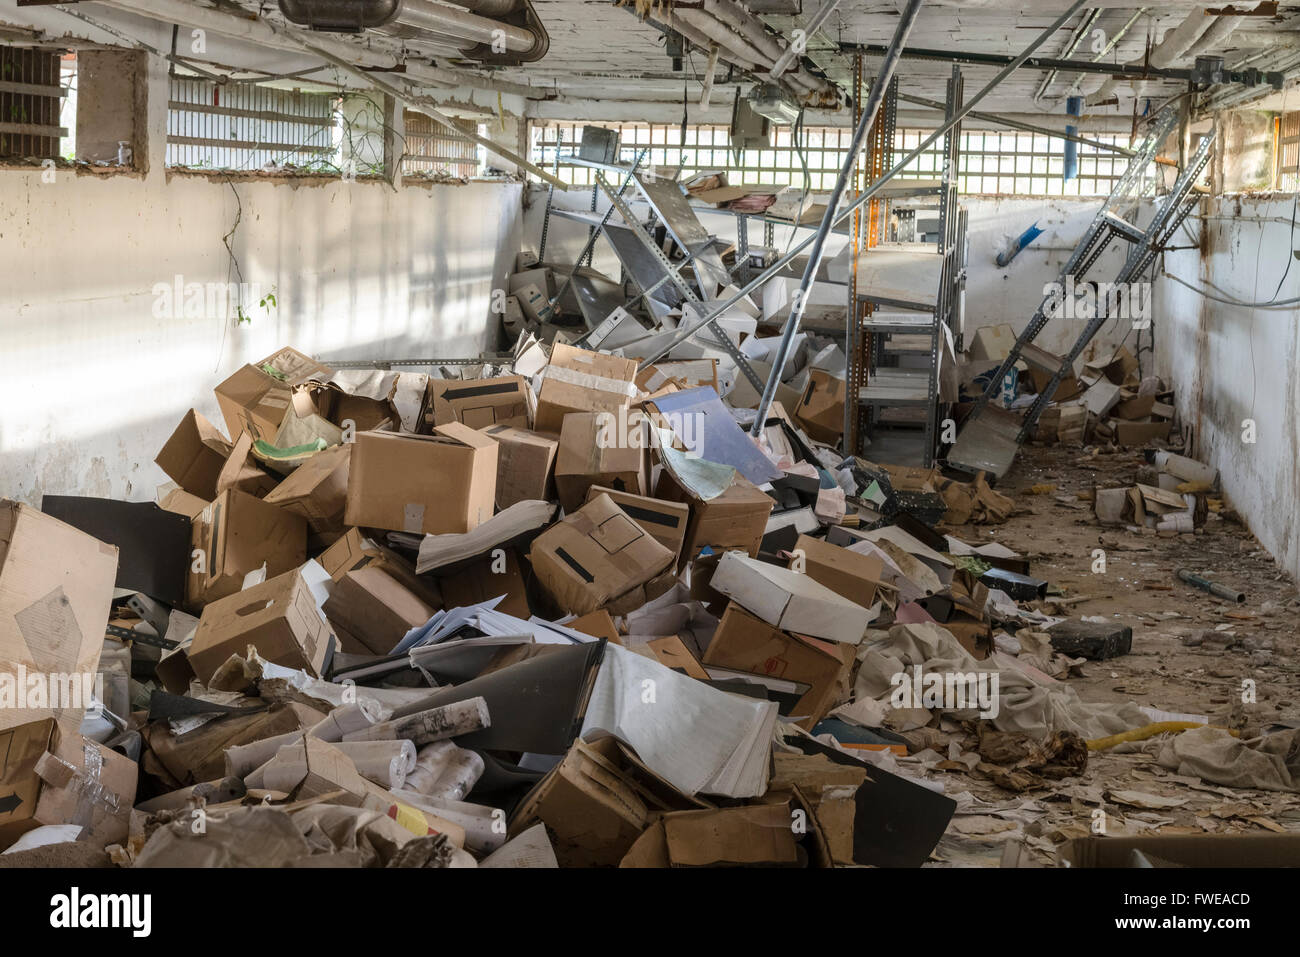 sell office chairs rocking swing chair messy warehouse stock photo: 101733757 - alamy